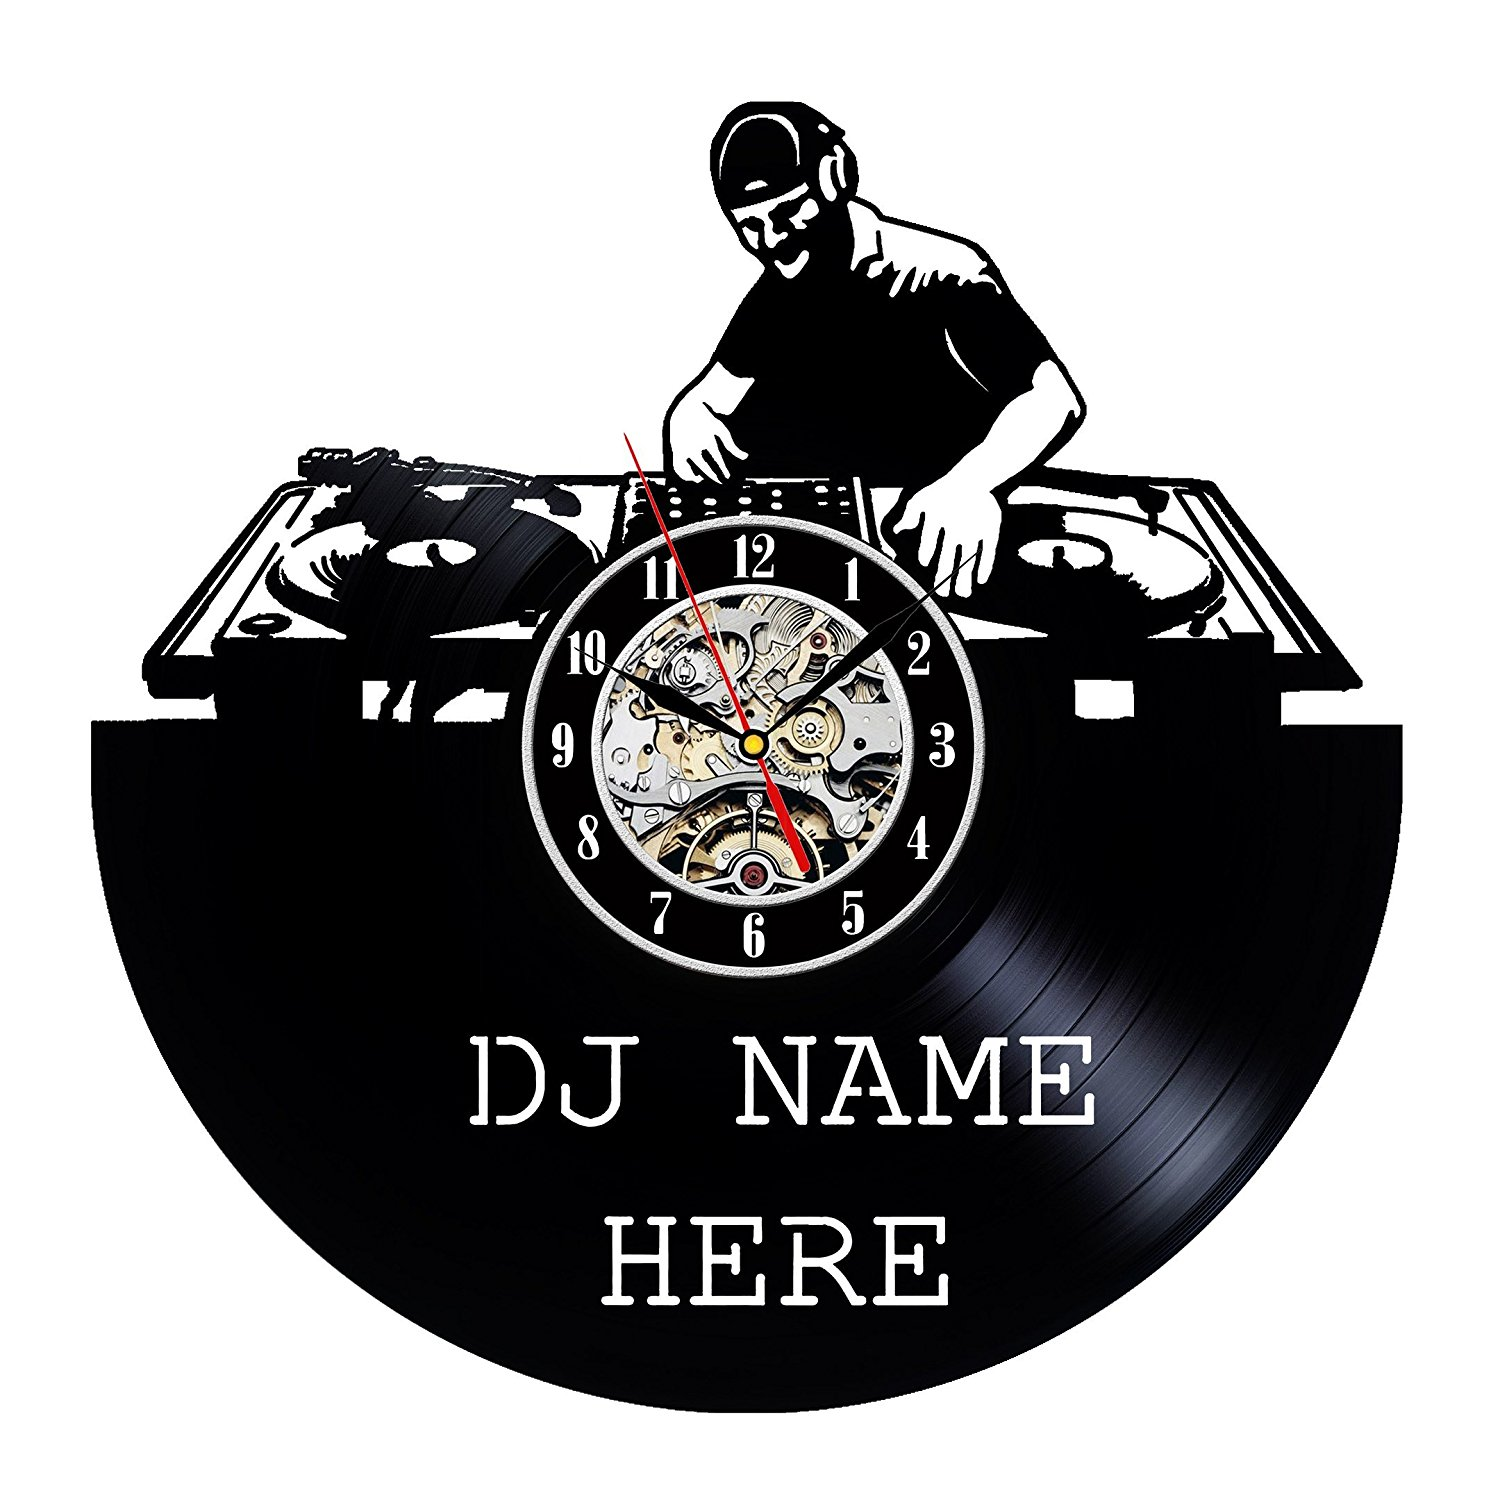 Vinyl Record Wall Clock Modern Design DJ Name Here Theme Clocks Vintage Retro Style Classic CD Wall Watch Home Decor 12 Inch